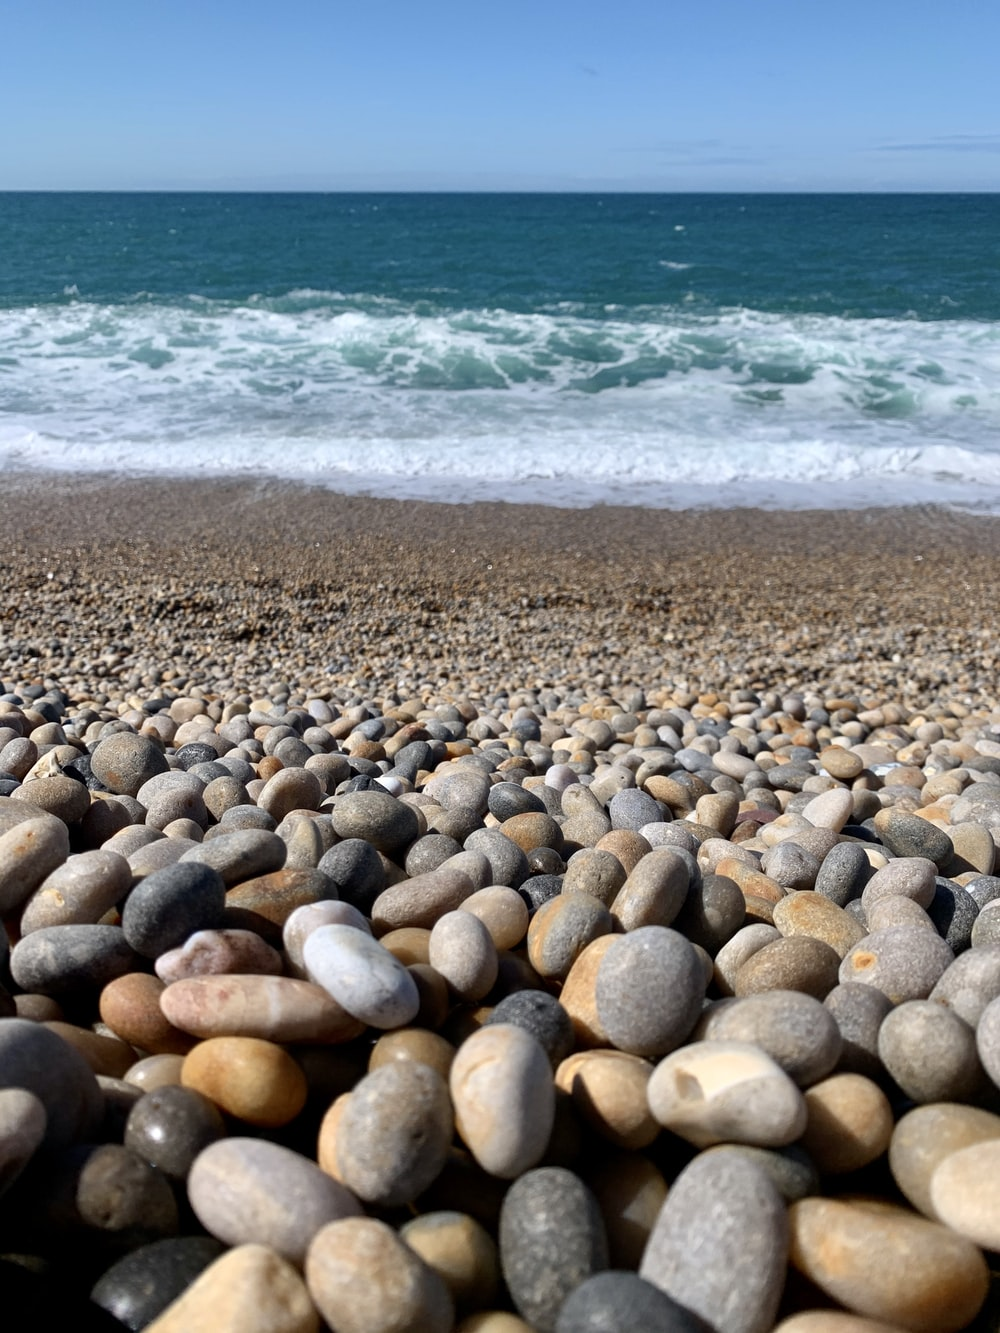 brown and gray stones on beach during daytime